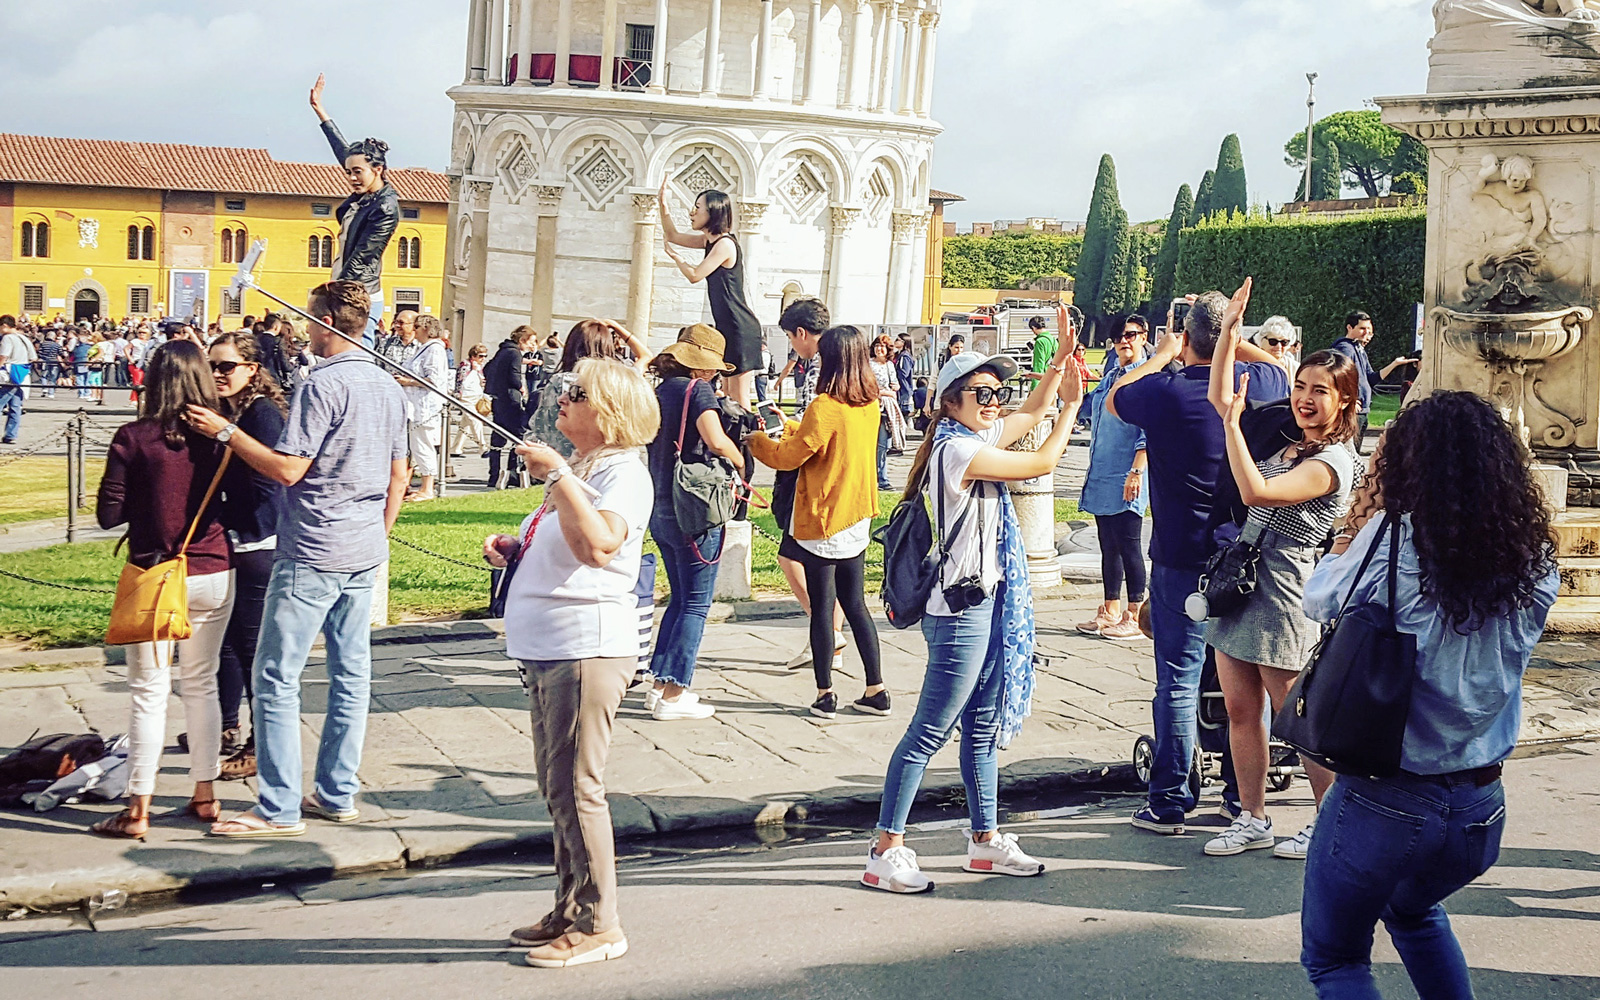 Tourists having fun as they pose for, and take photos of the Leaning Tower, with many people putting their hands out as if supporting the weight of the tower.